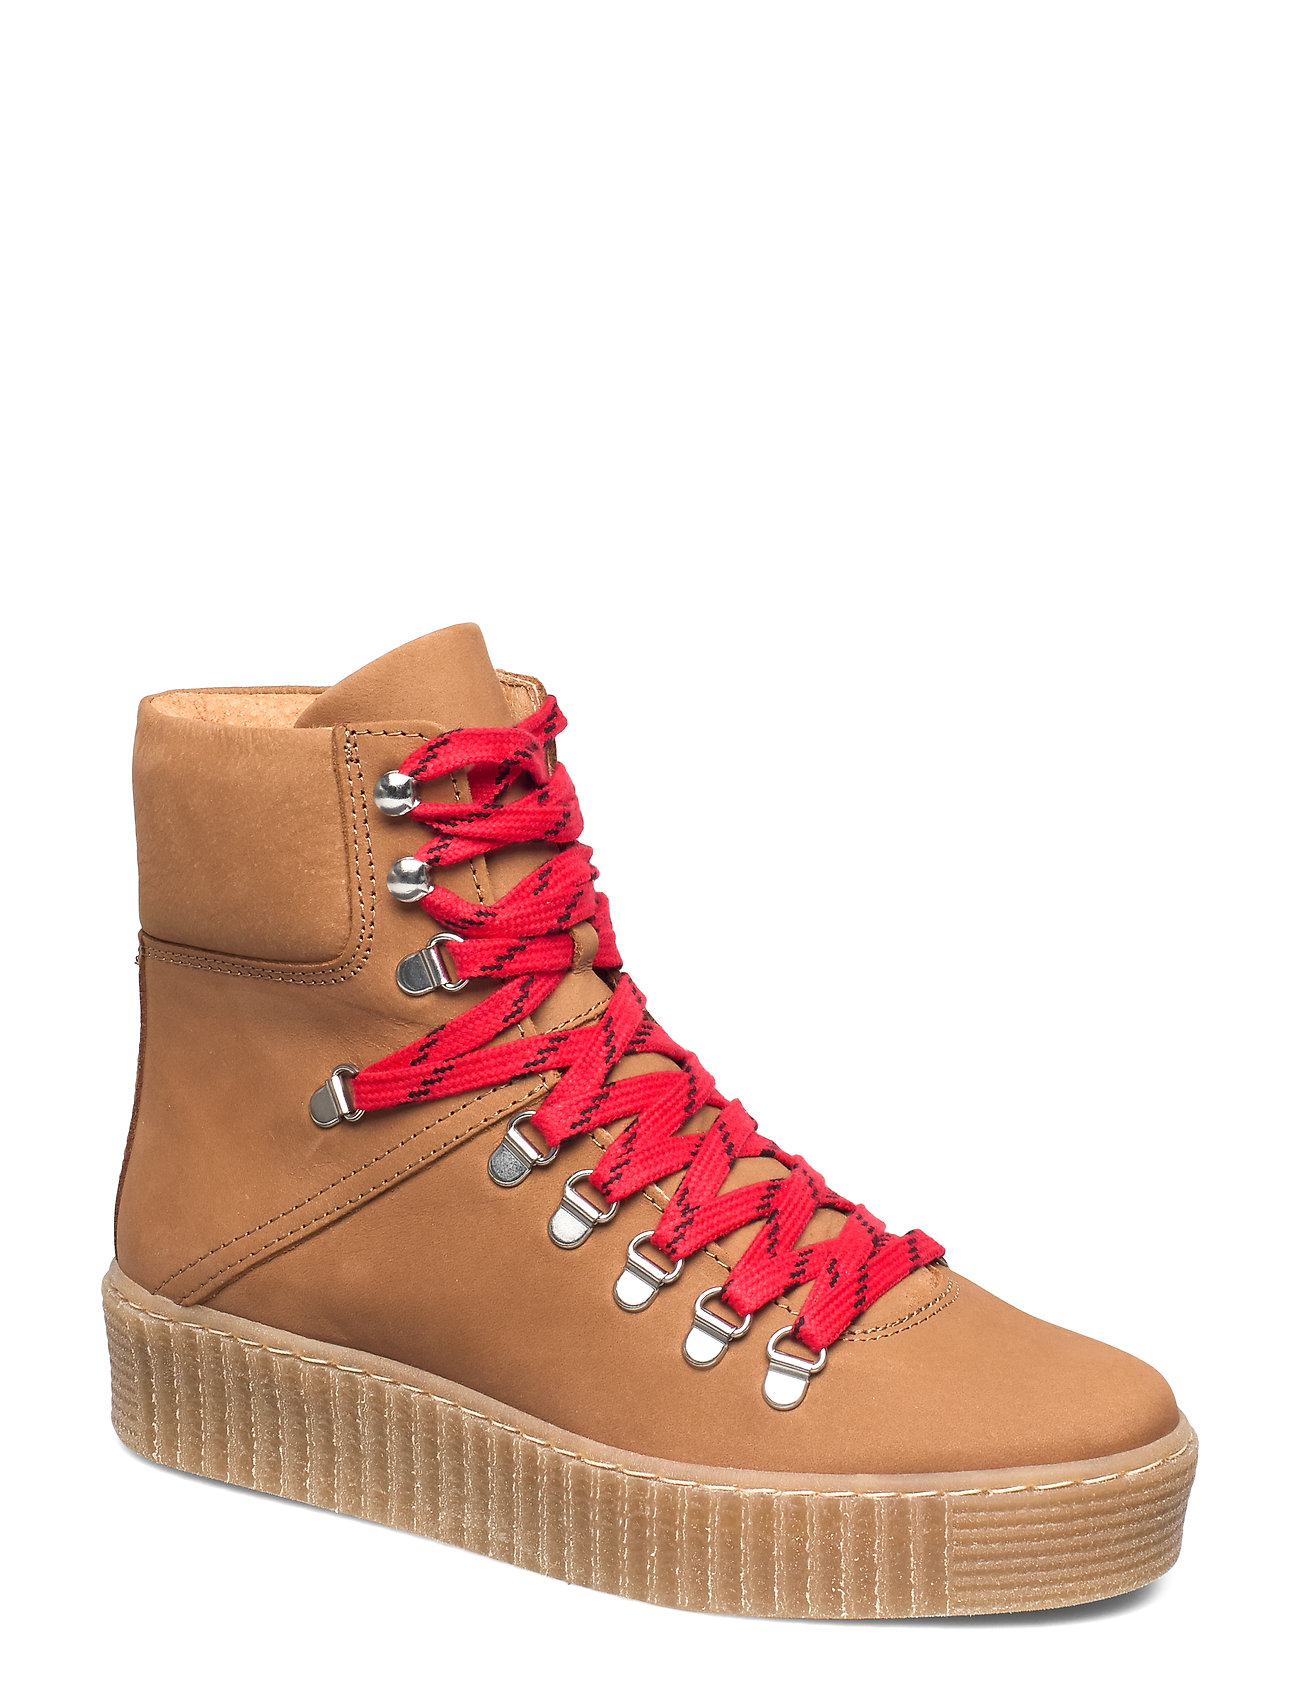 Image of Agda N Shoes Boots Ankle Boots Ankle Boot - Flat Lyserød Shoe The Bear (3406190543)